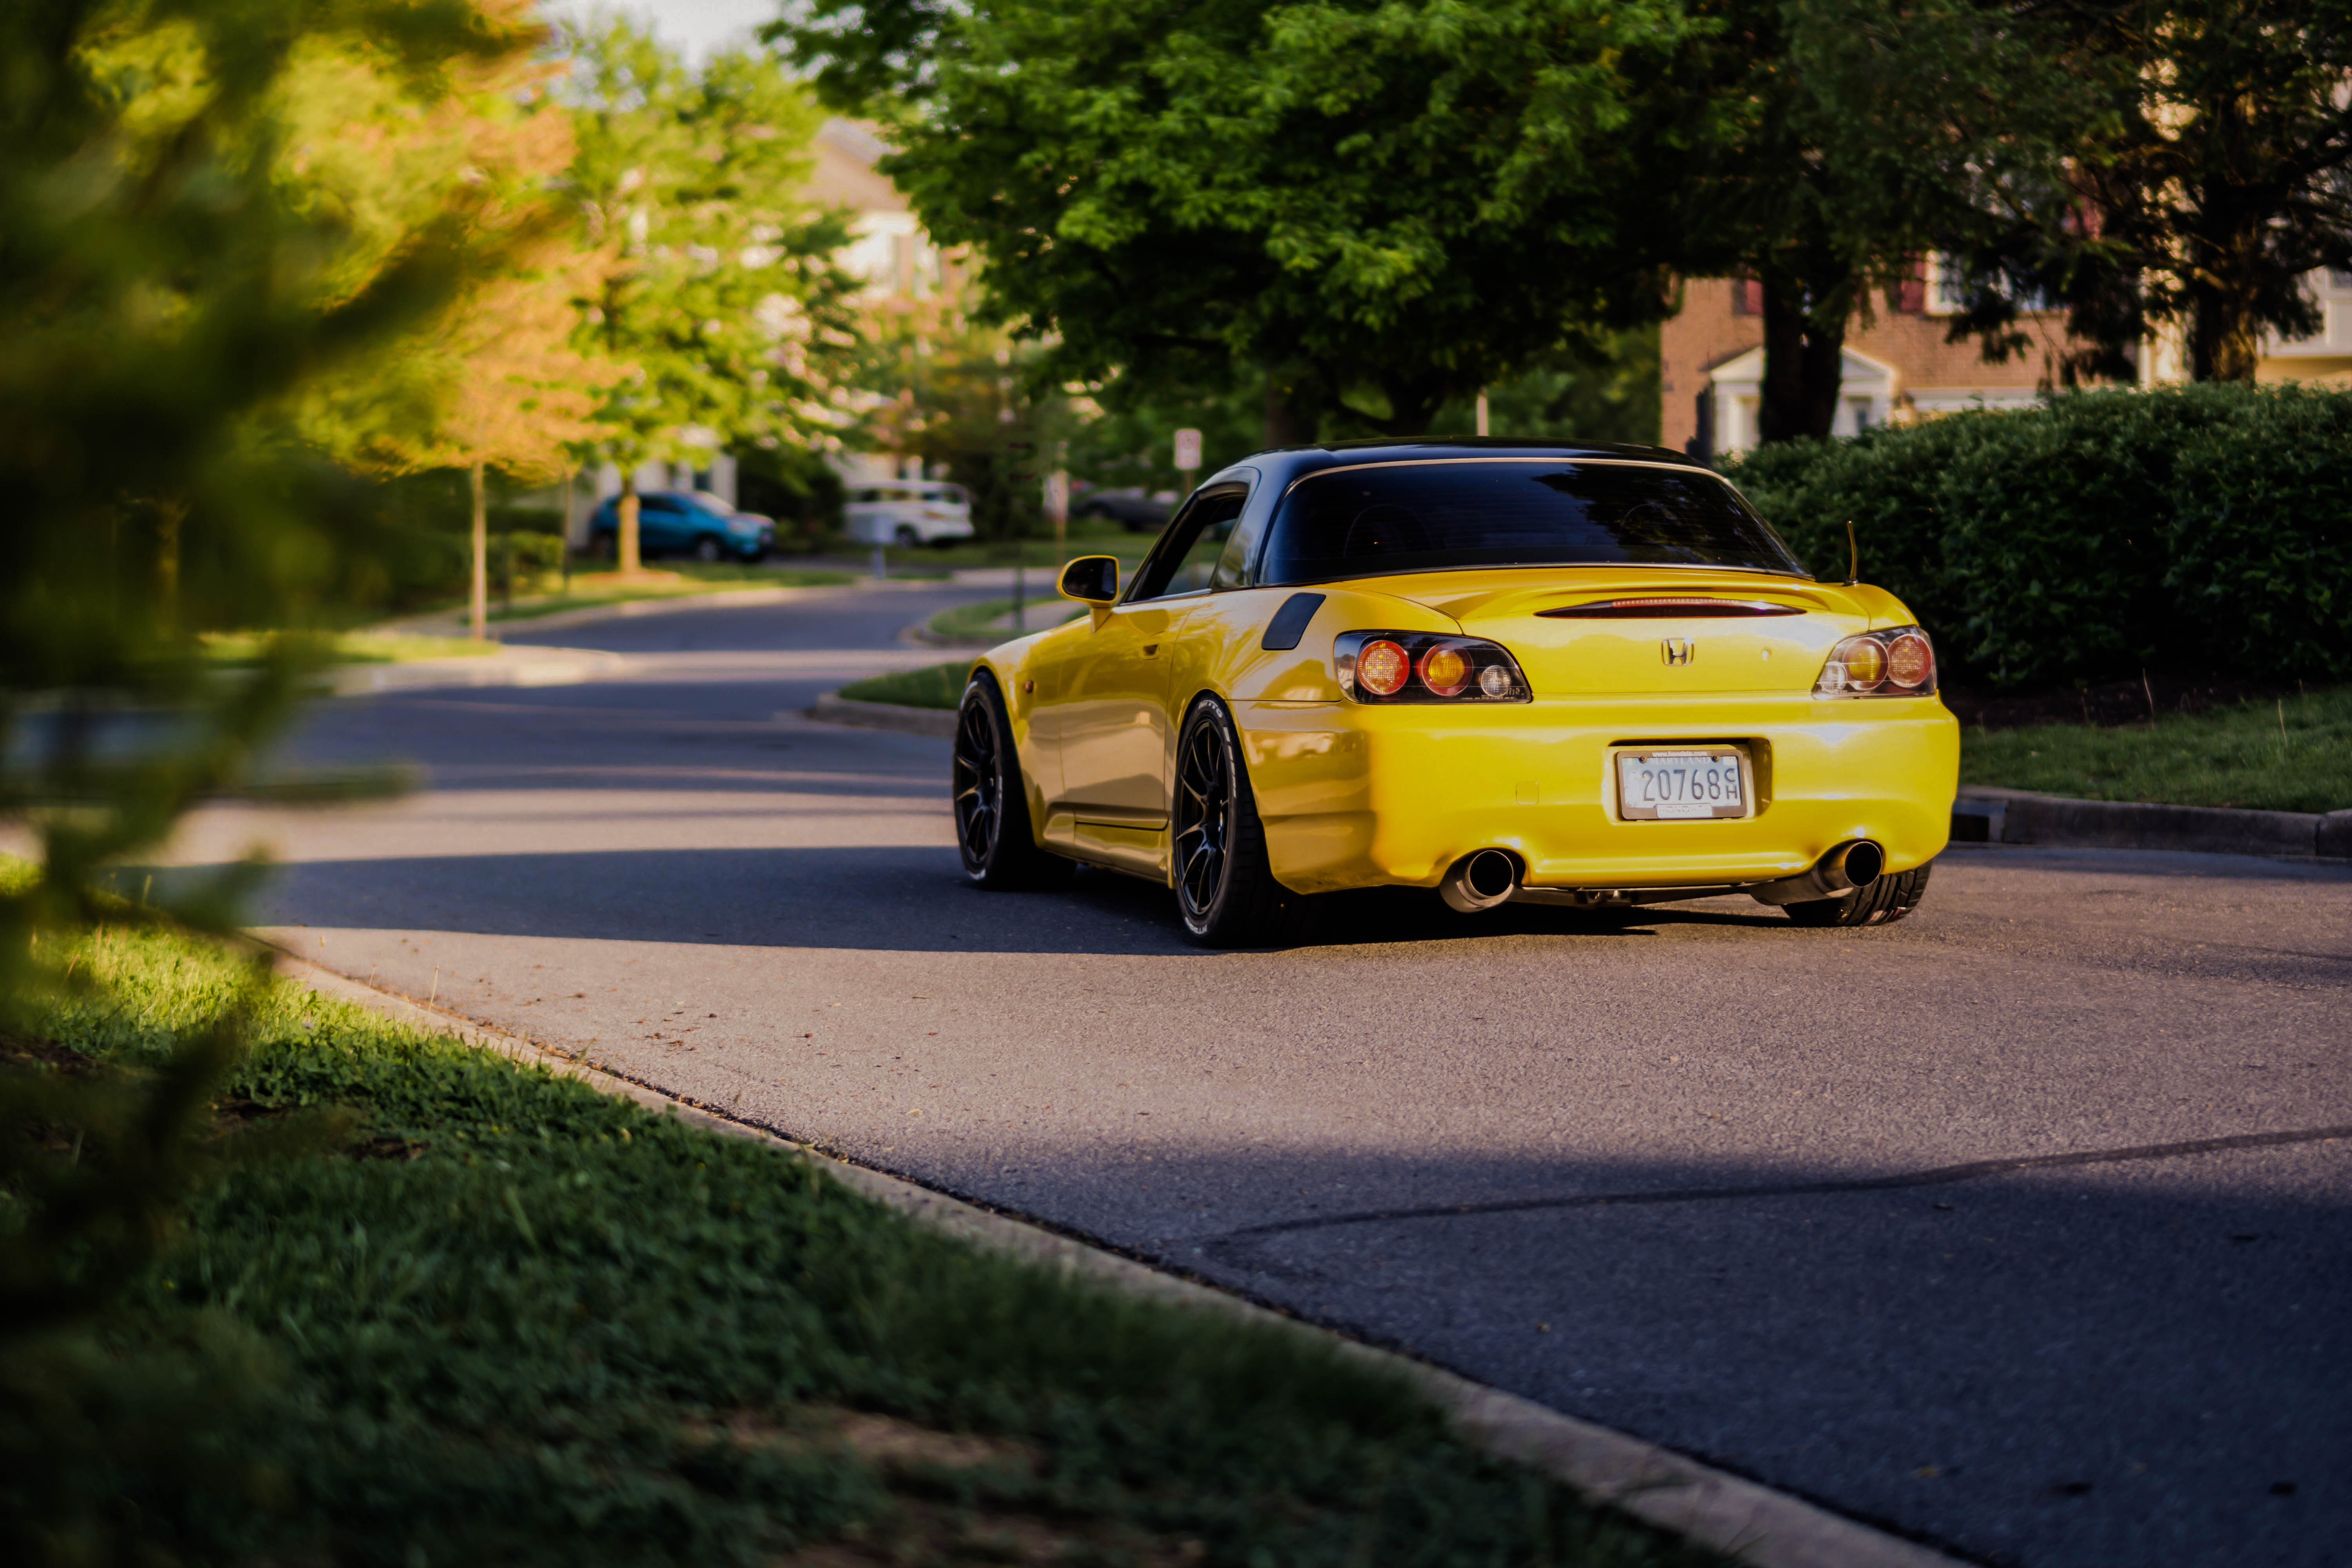 yellow Honda coupe on gray concrete road between green trees and plants during daytime